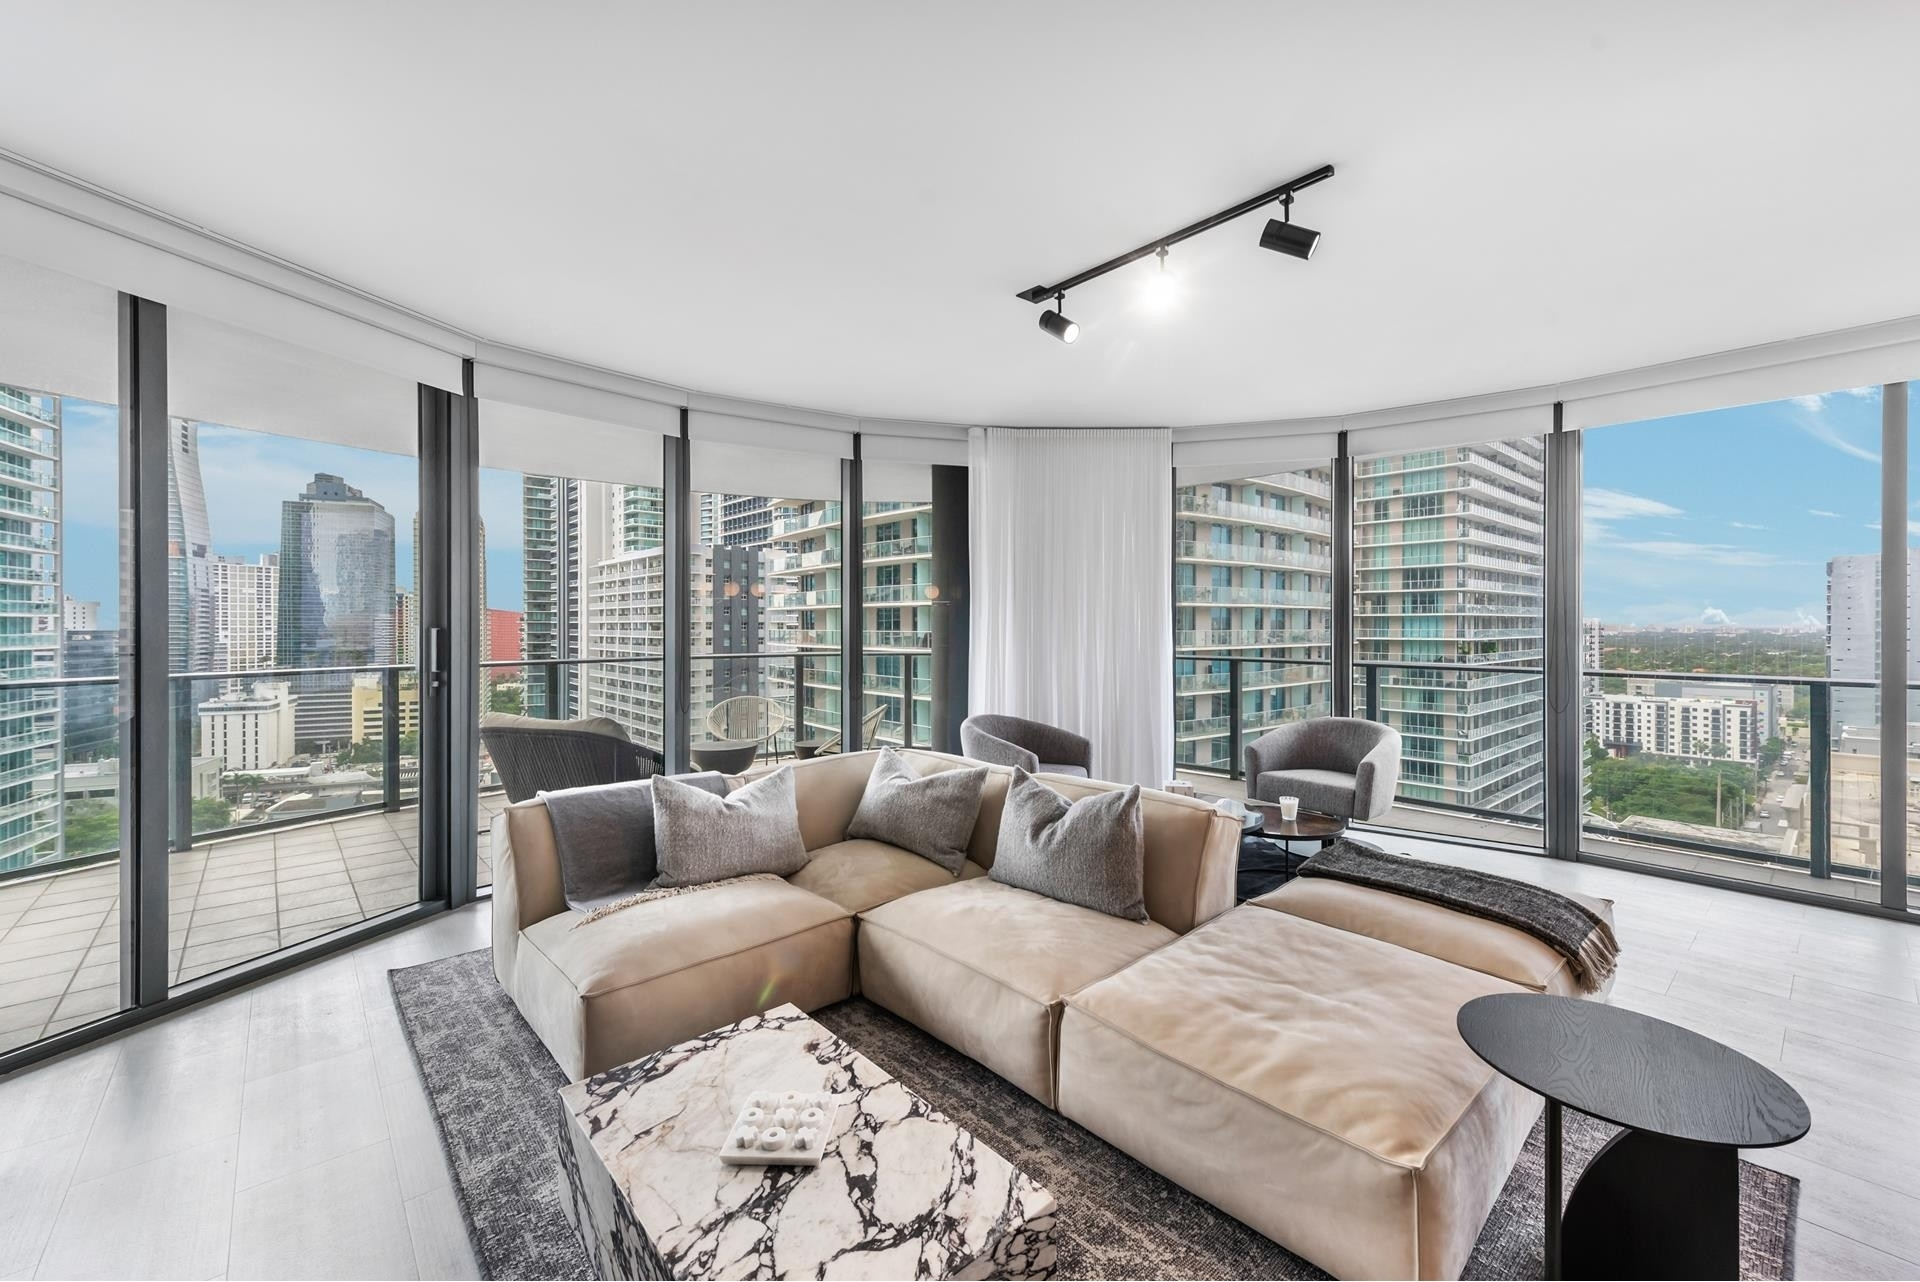 Property à 1000 Brickell Plz , 2102 Miami Financial District, Miami, FL 33131